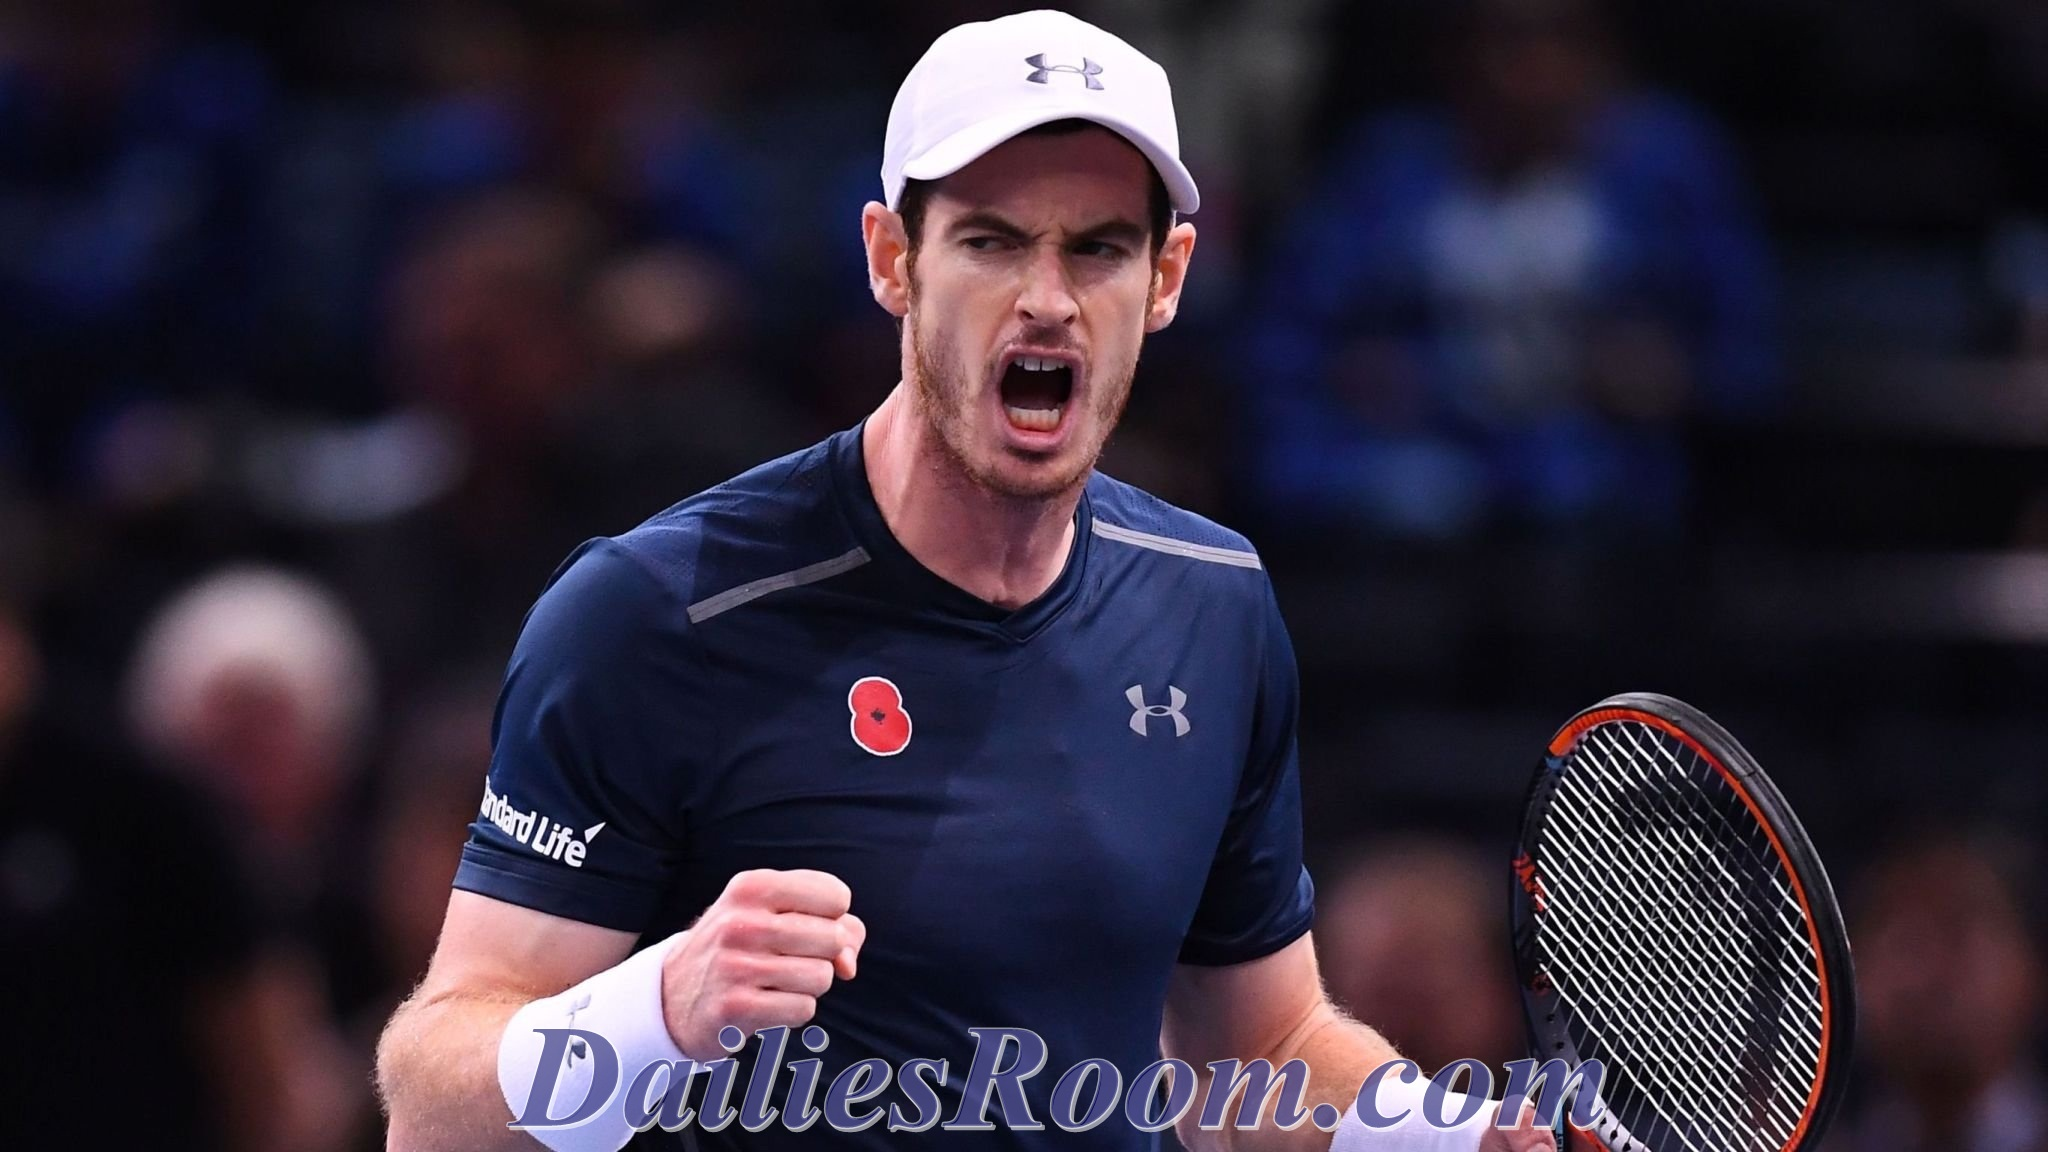 Andy Murray becomes world No 1 After Raonic withdraws   Murray's year-end rankings